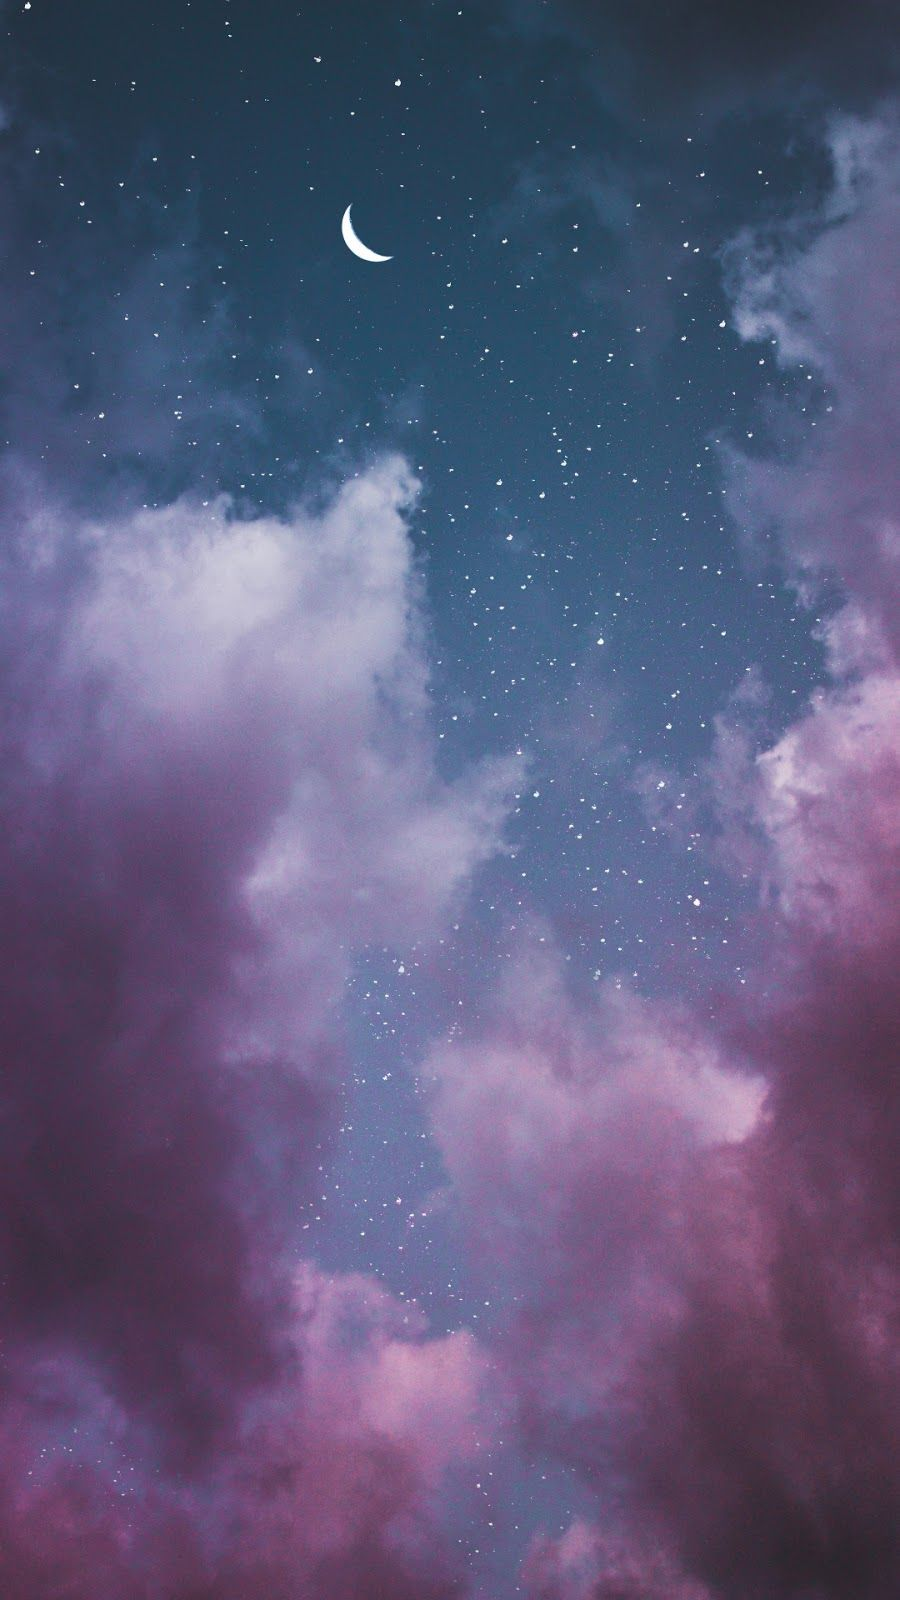 Night Sky Wallpaper Iphone Android Background Followme Night Sky Wallpaper Desktop Wallpaper Art Wallpaper Space